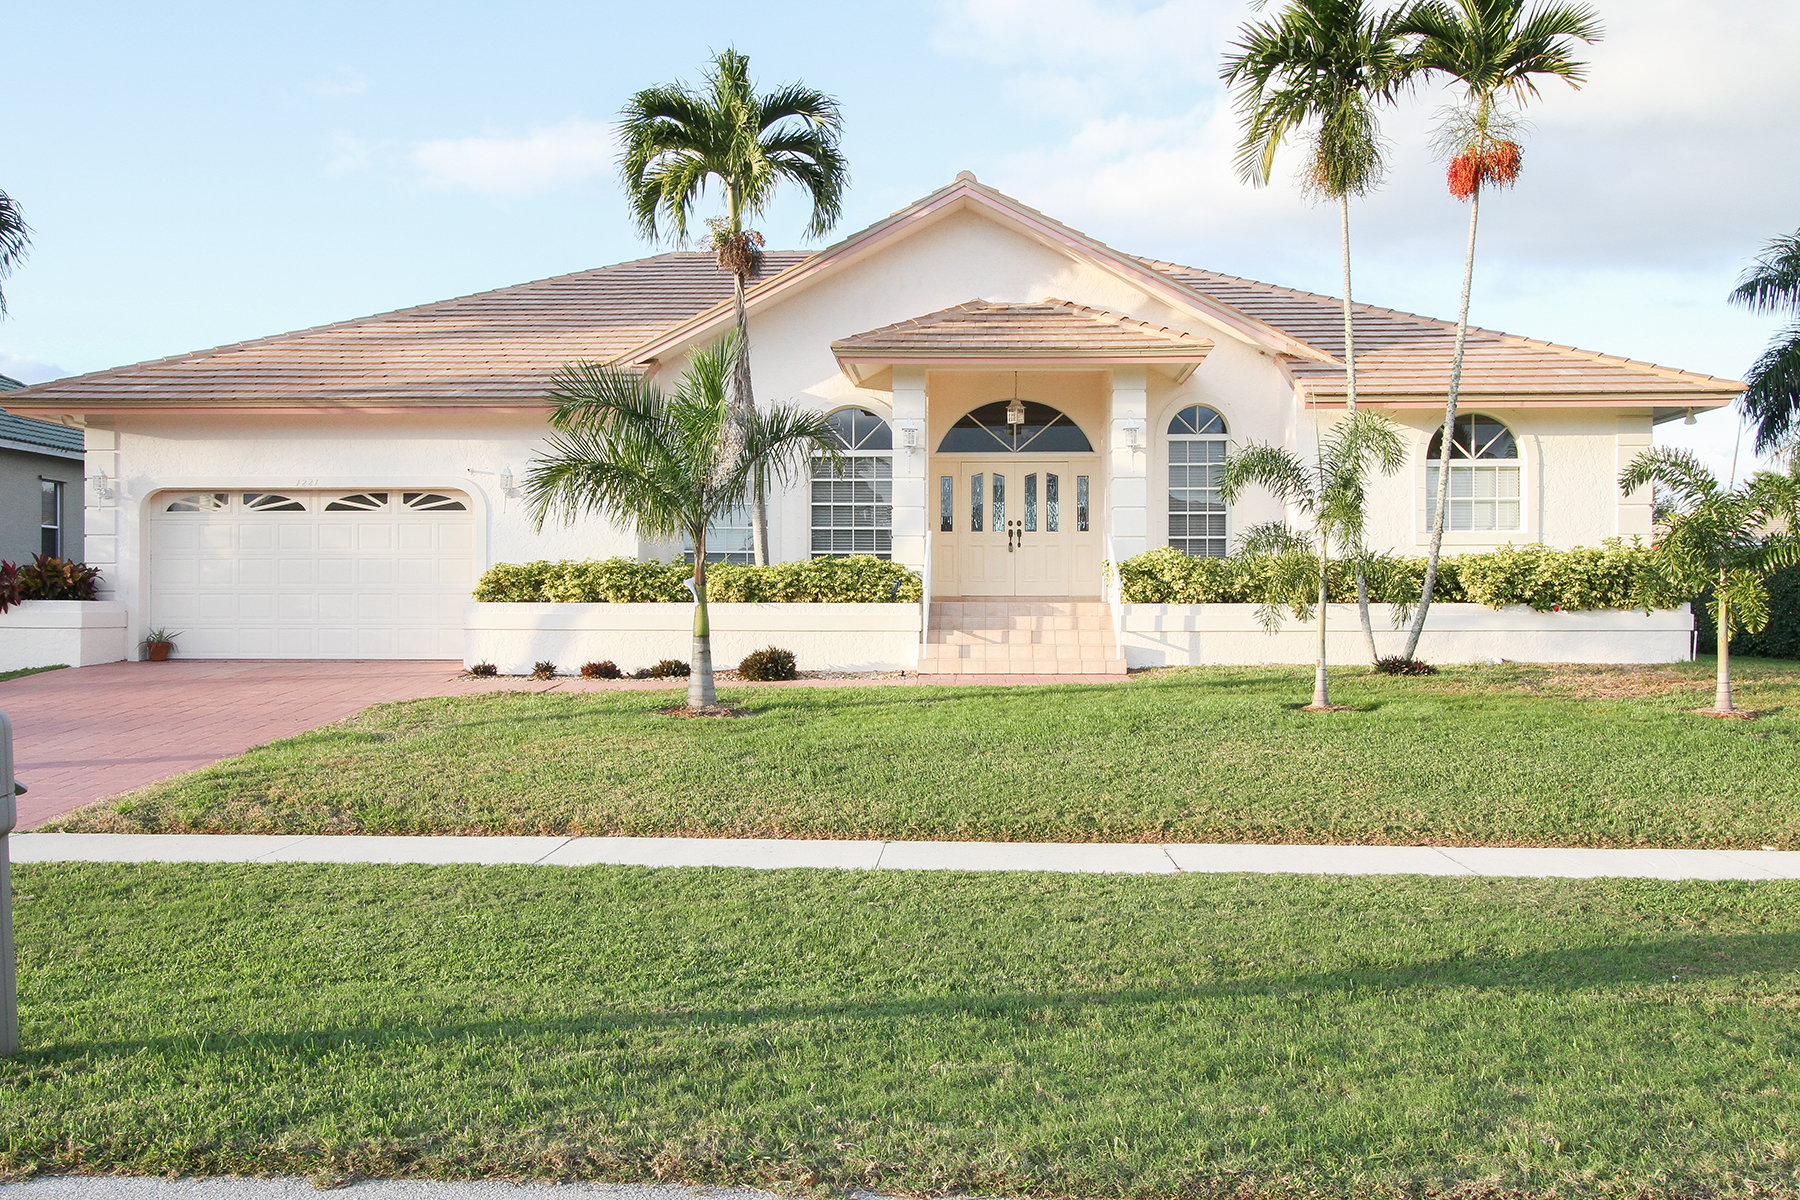 Single Family Home for Sale at MARCO ISLAND - LUDLAM COURT 1221 Ludlam Ct, Marco Island, Florida 34145 United States